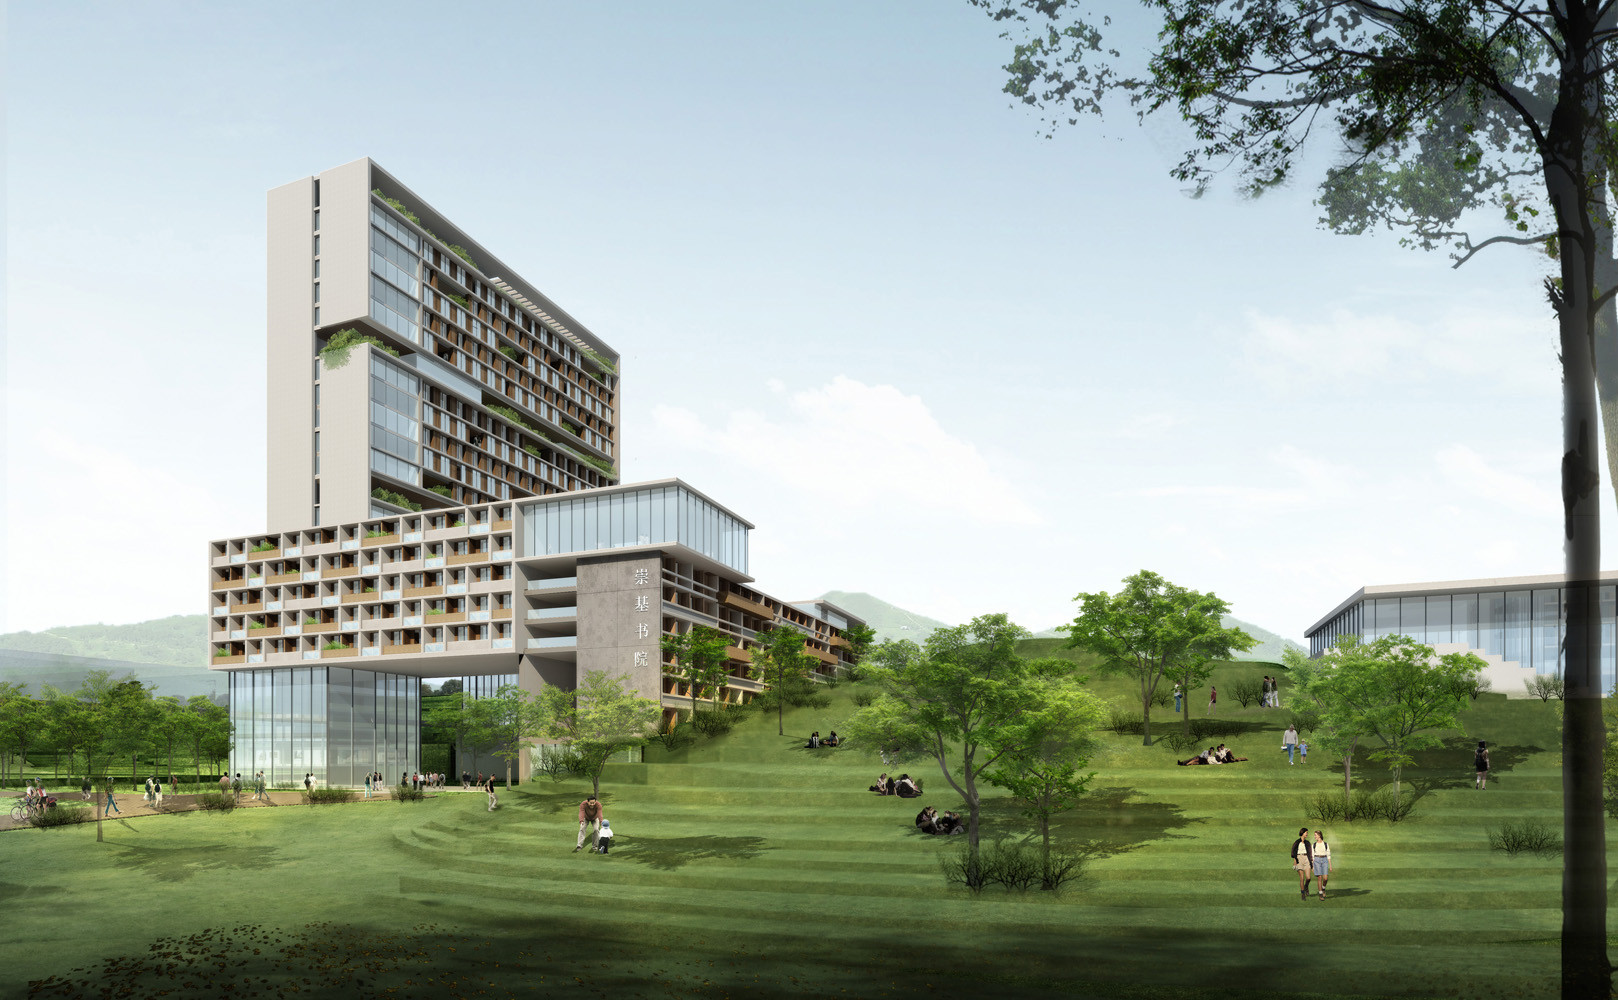 Superb Chinese University Of Hong Kong (Shenzhen Campus) Master Plan Winning  Proposal,Courtesy Of